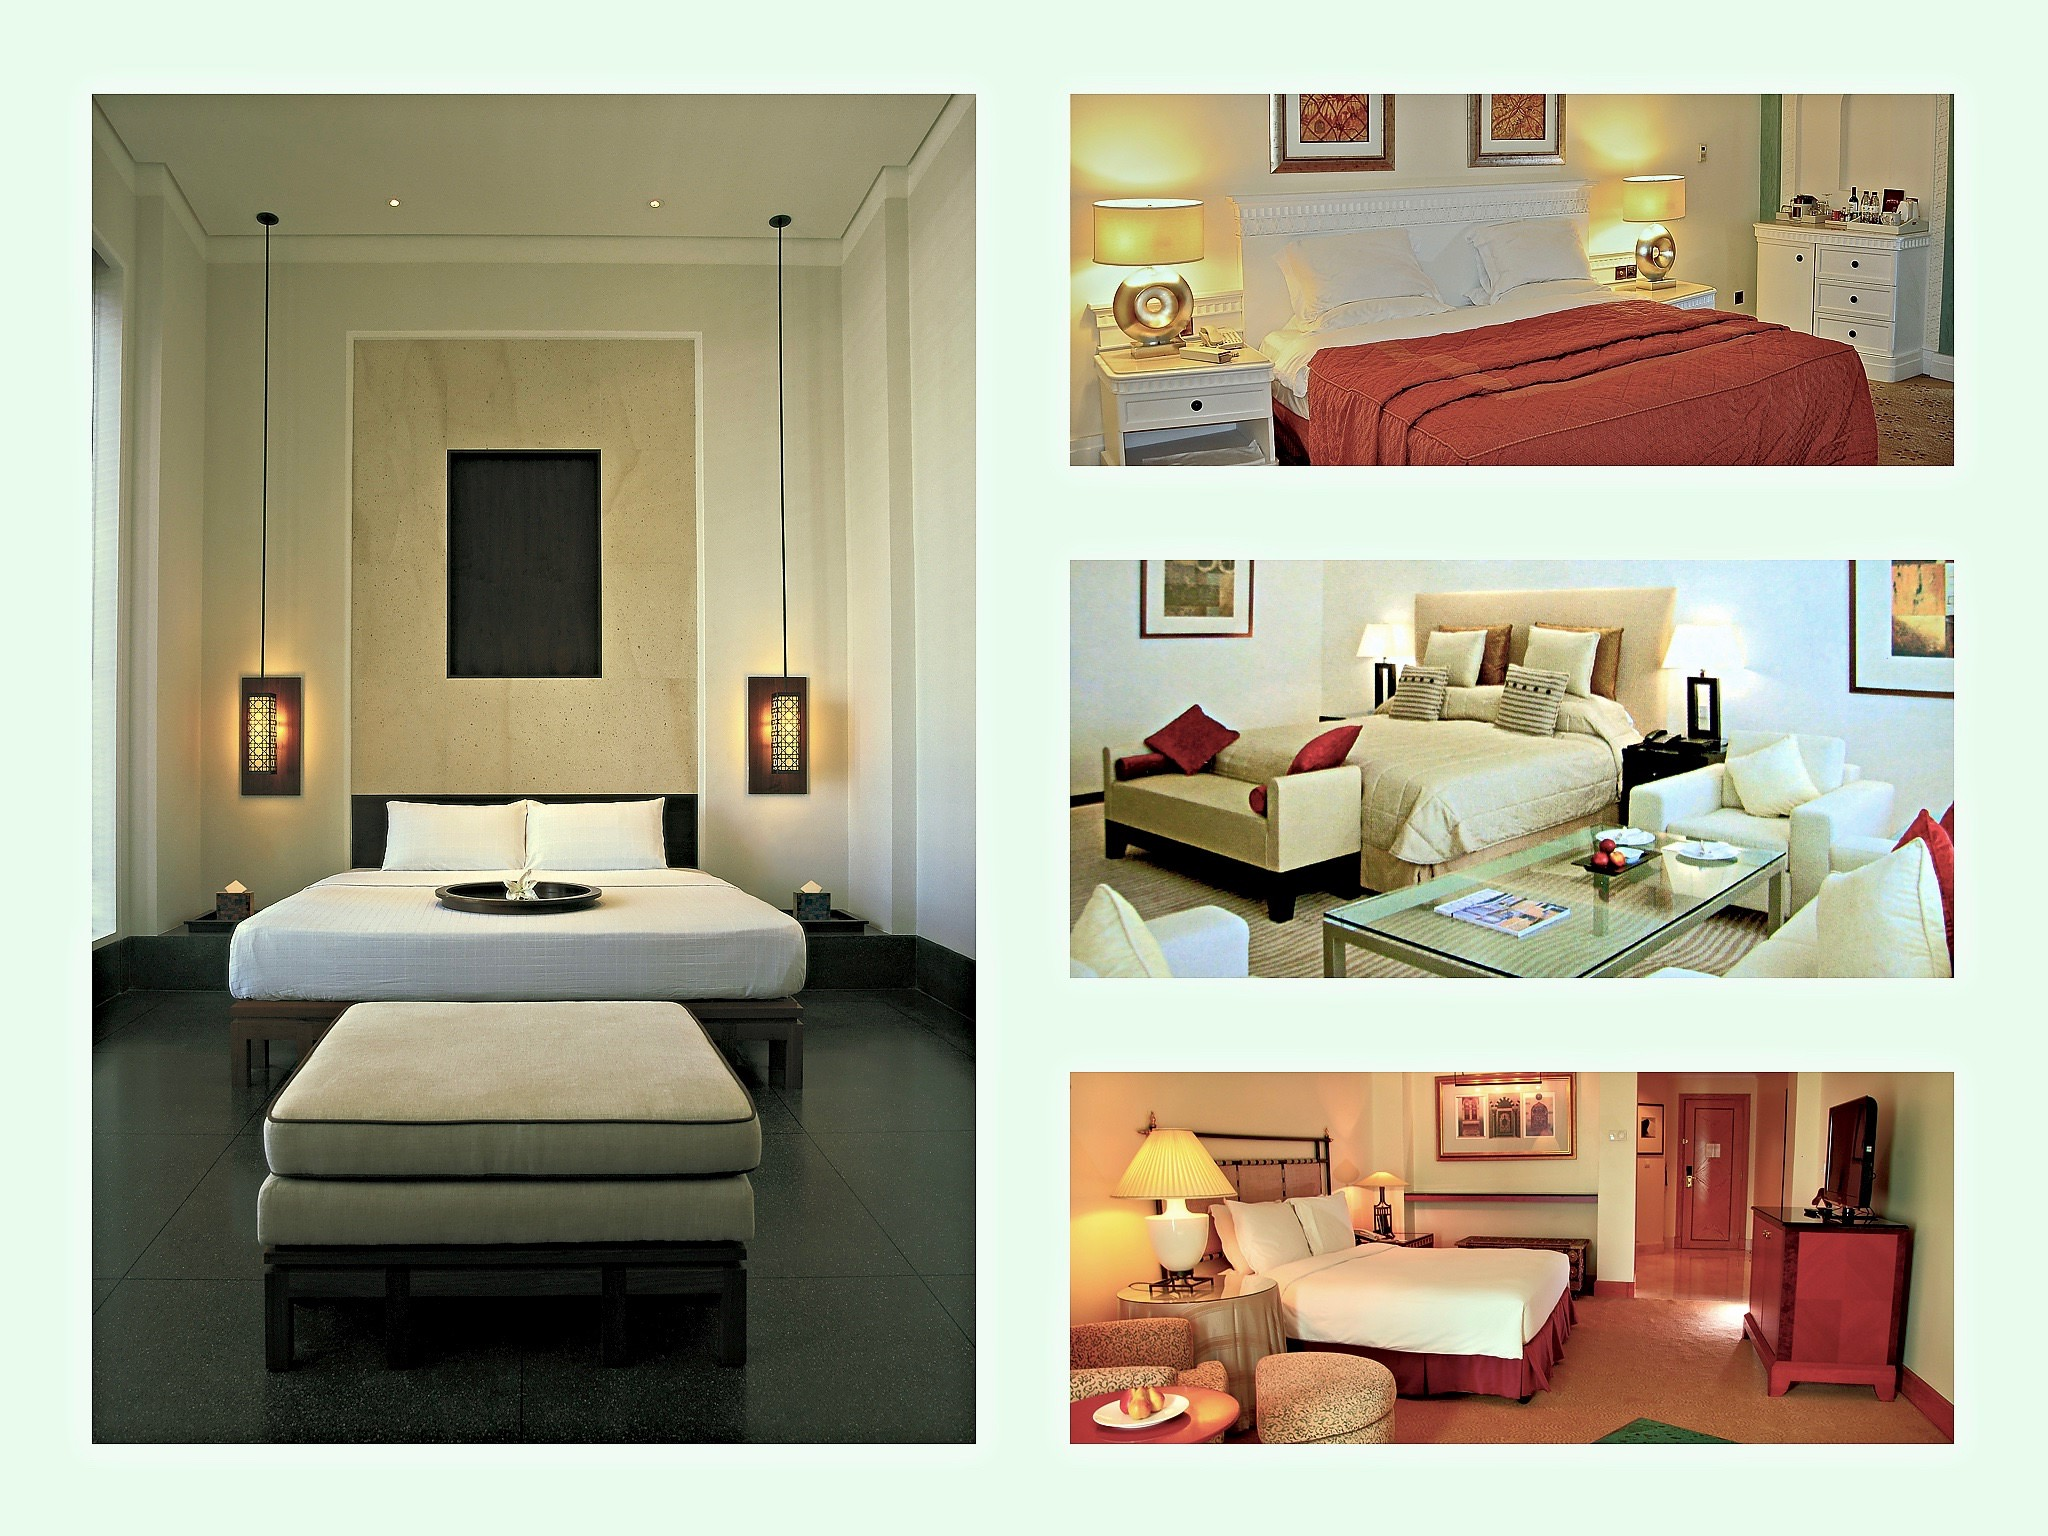 contract beds for hotel